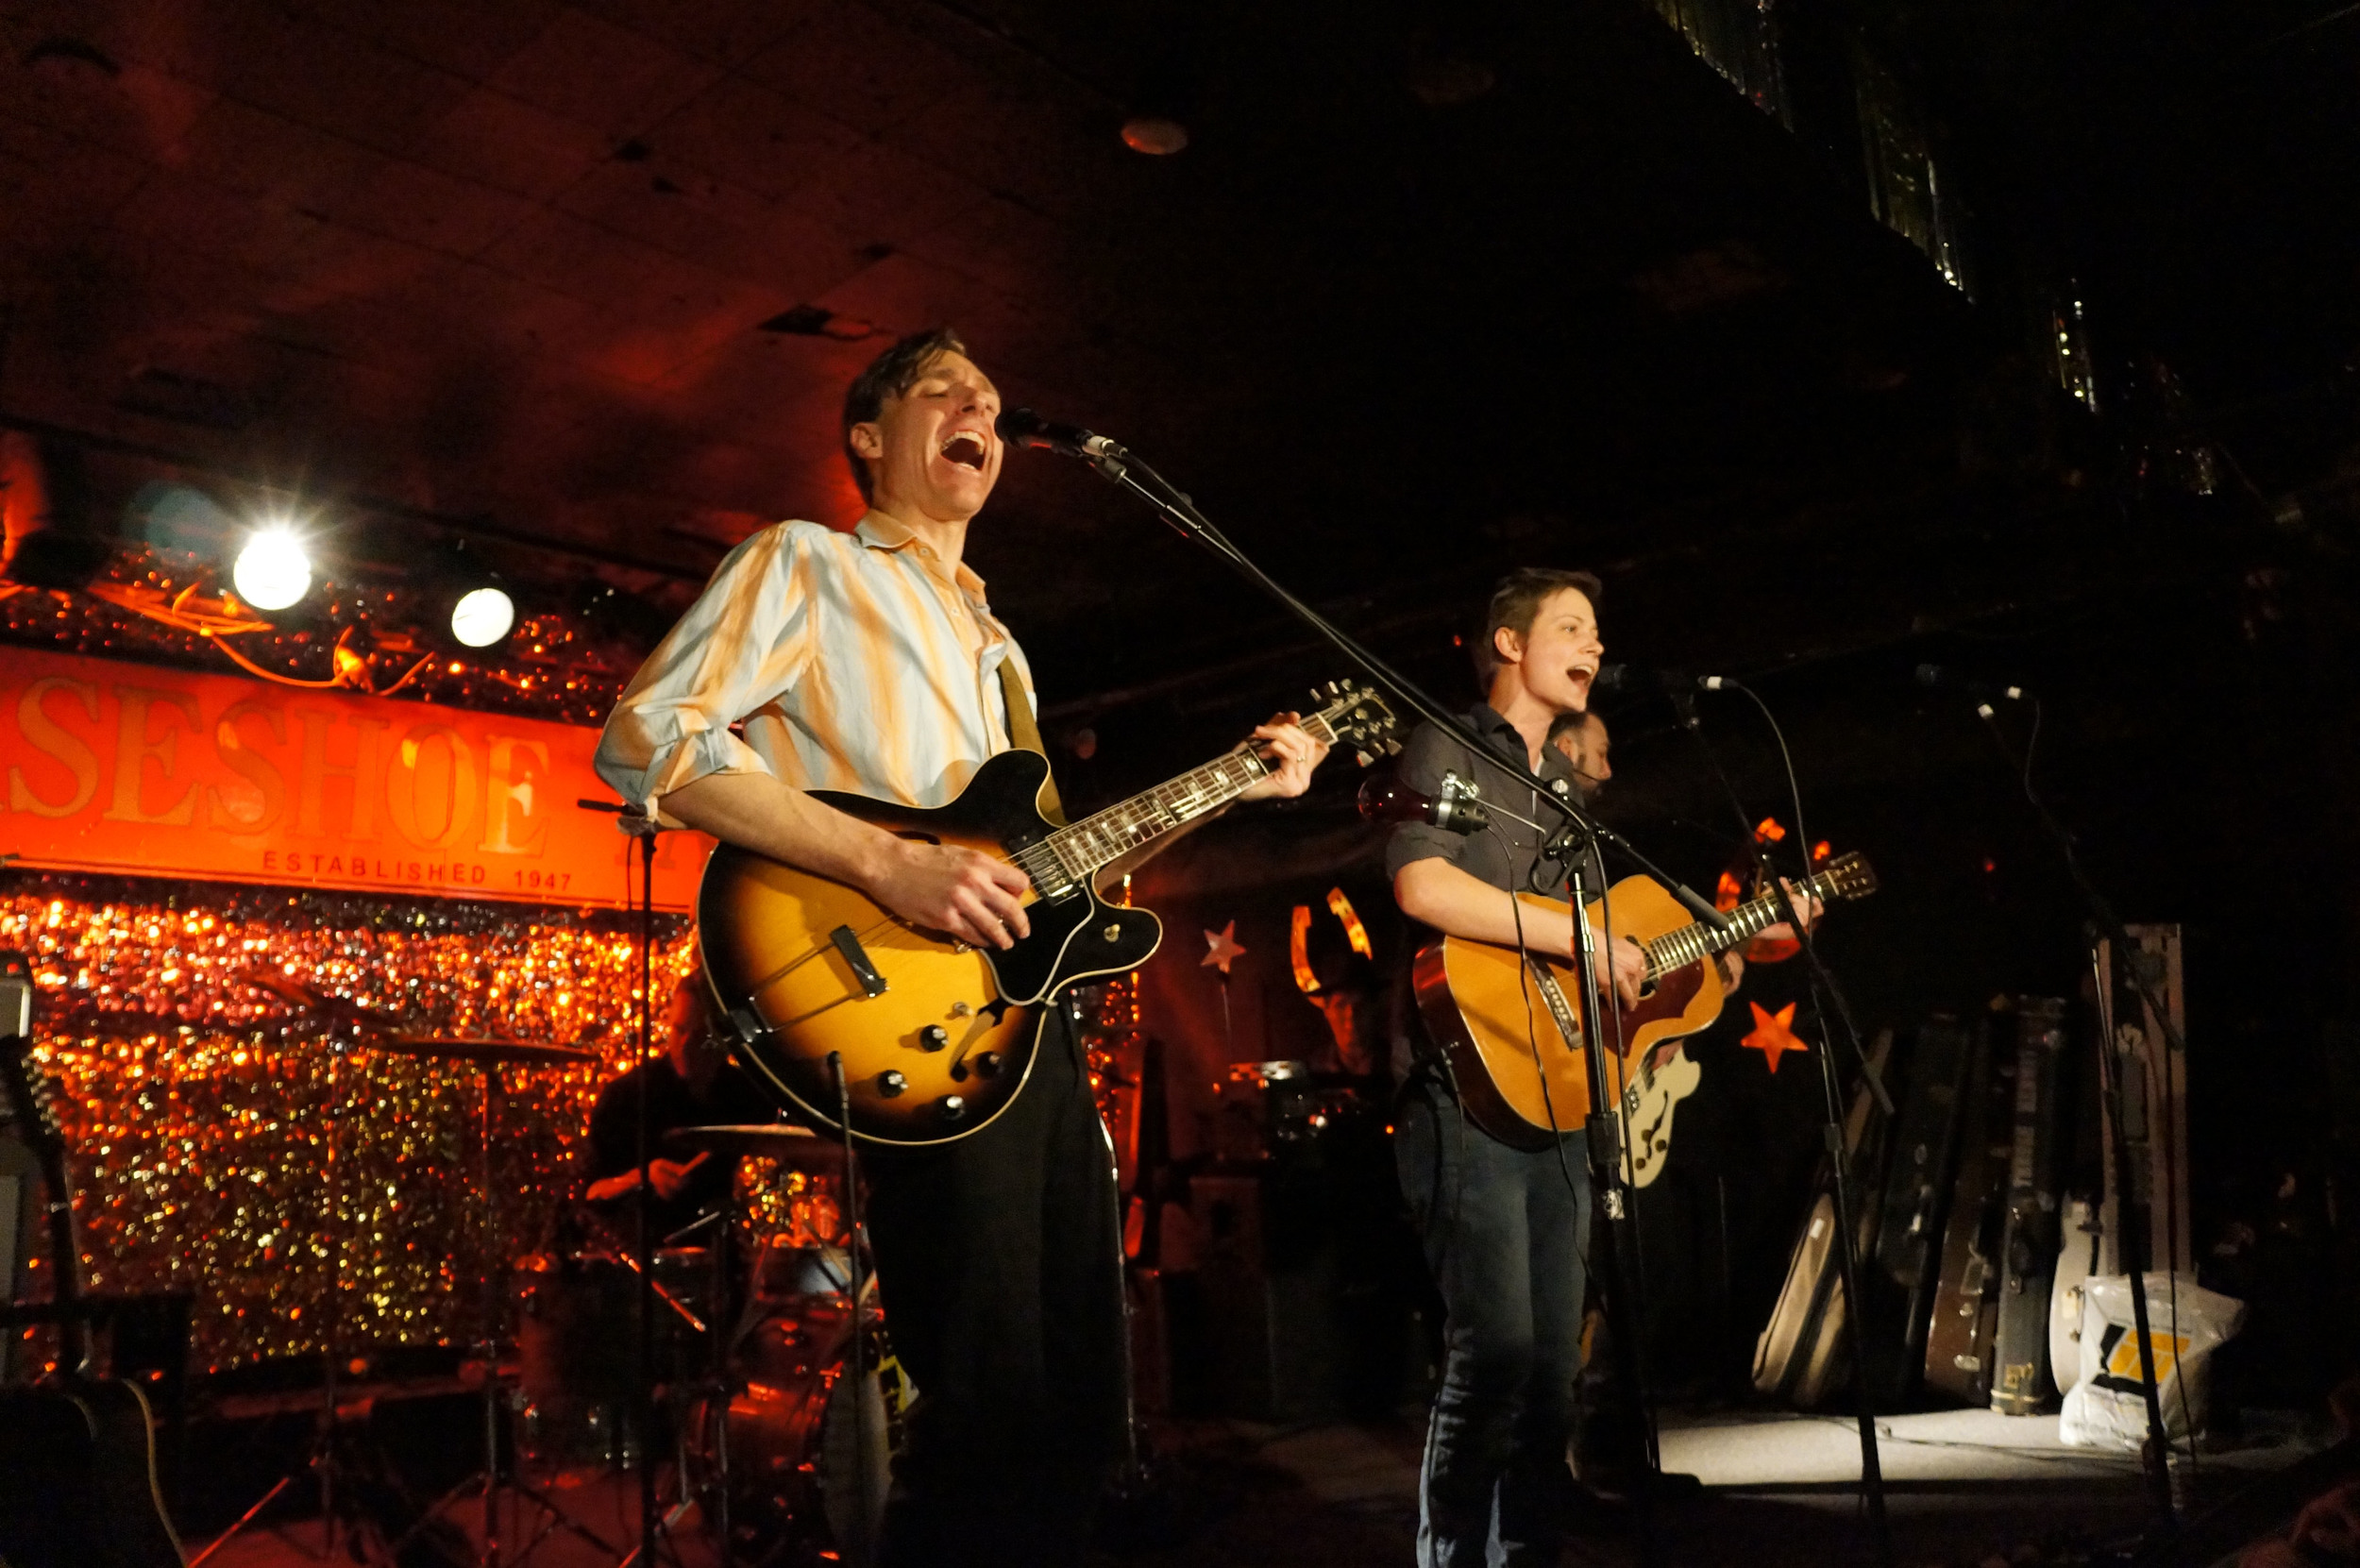 Joel_Plaskett_Mo_Kenney_five_years_12_15.jpg